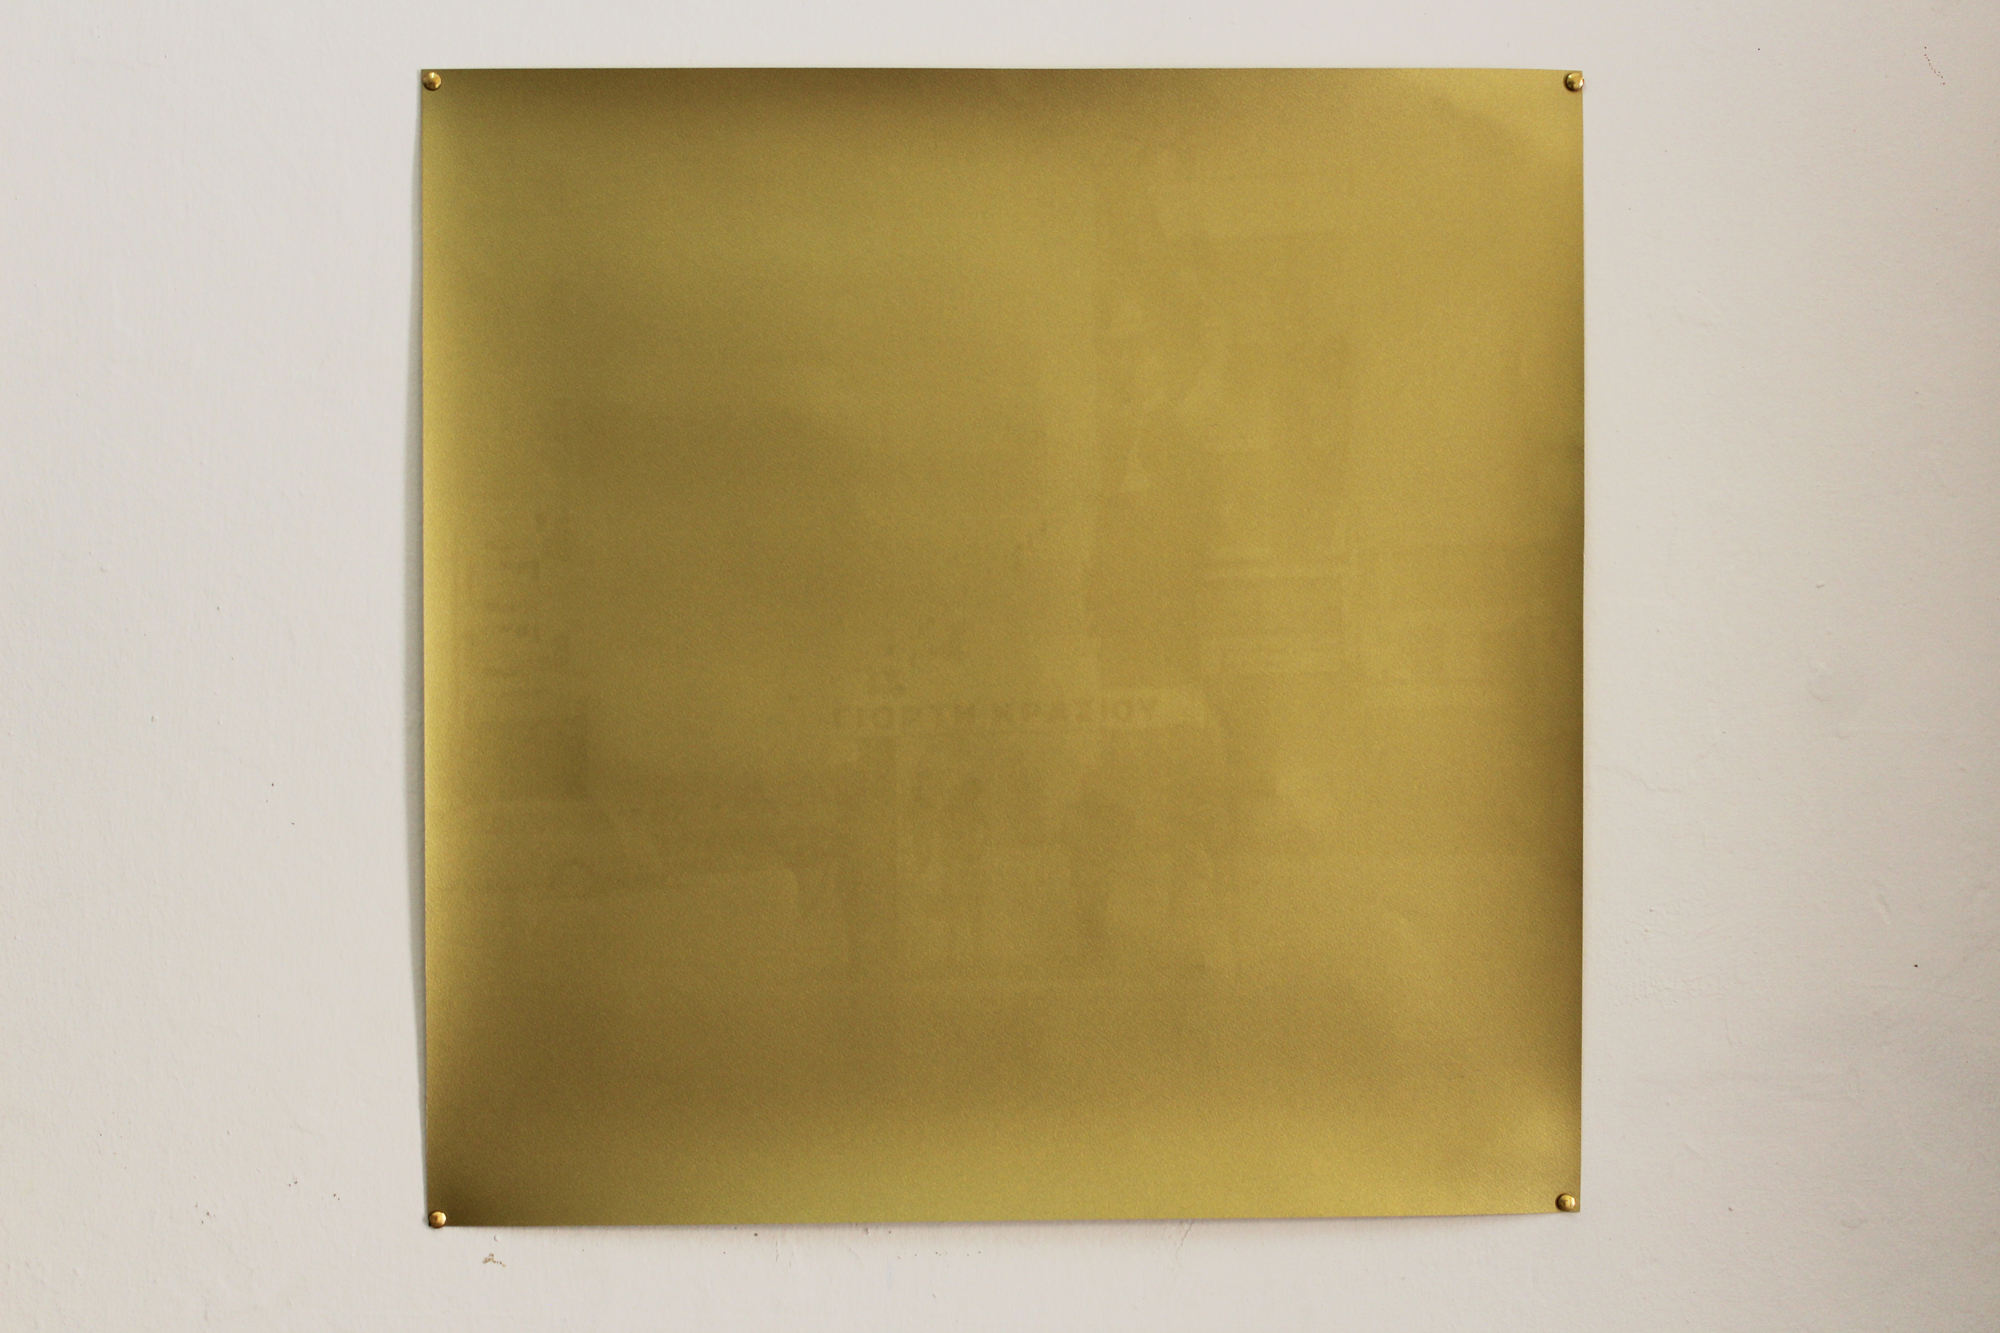 Anastasia Mina,  Untitled , 2014, Screen-print with gold pigment and digital print on paper, 70 x 70 cm